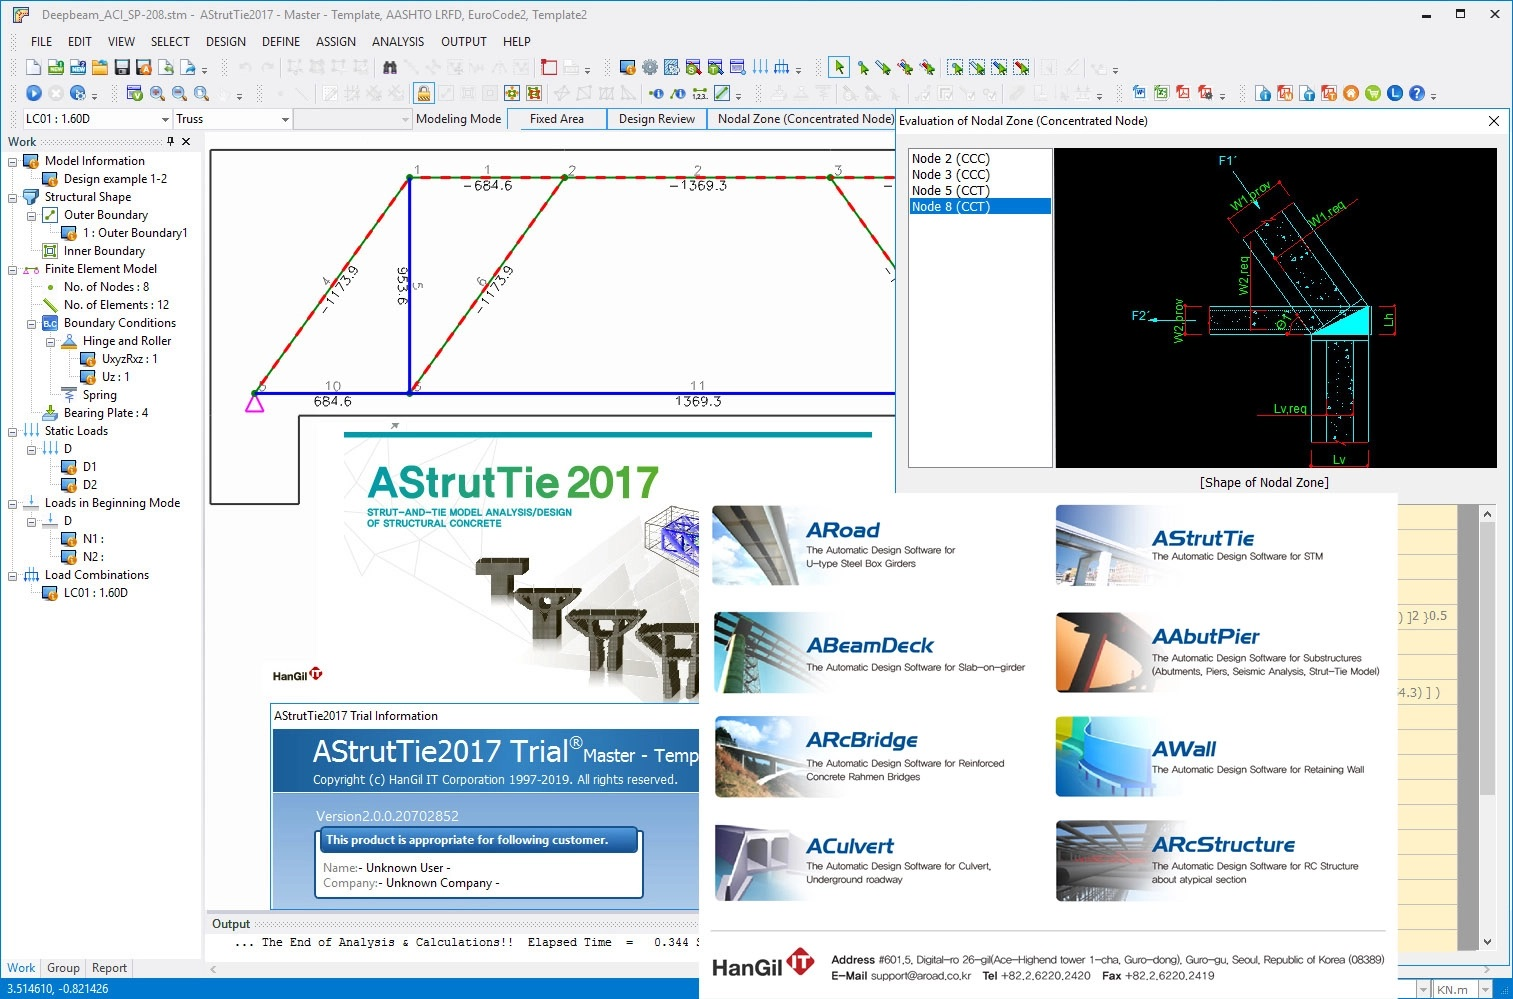 Working with HanGil IT AStrutTie 2017 v2.0 full license